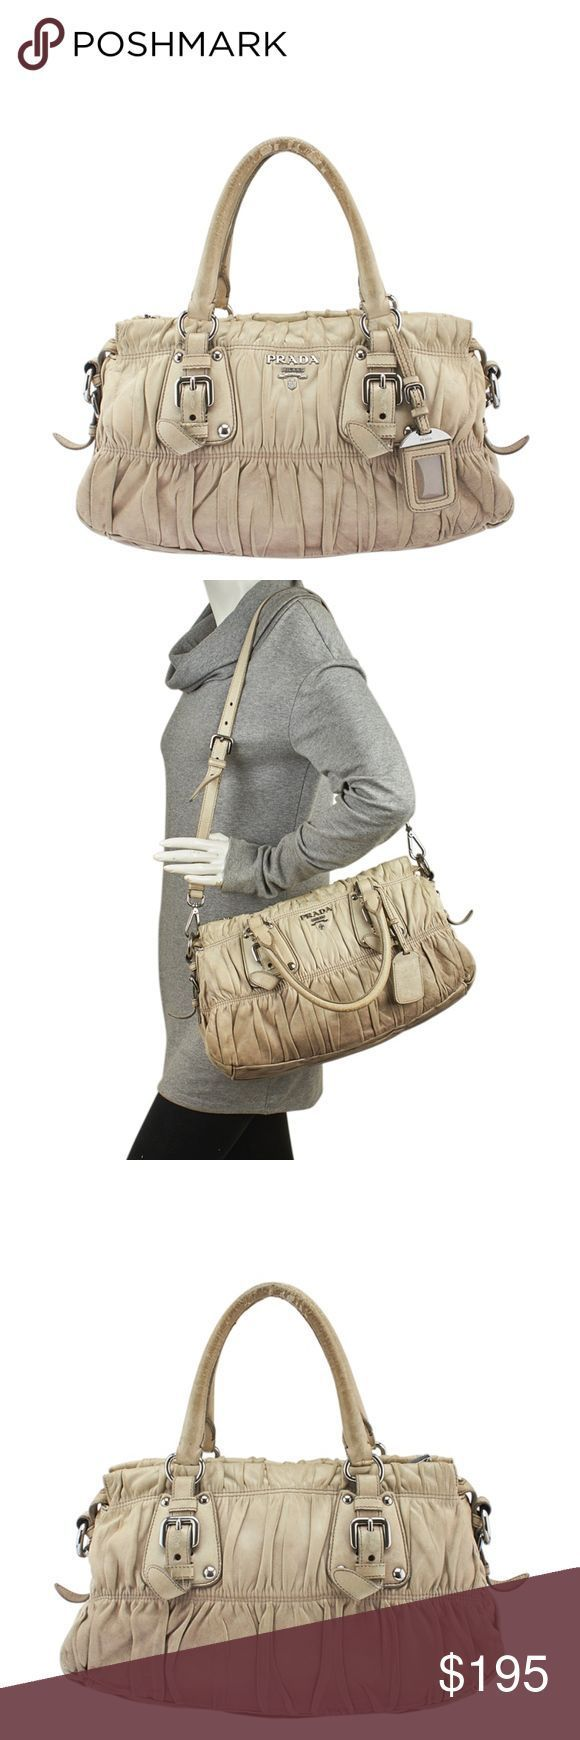 Tendance salopette 2017  Prada BN1407 Beige Leather 2-Way Satchel 138104 Designer: Prada Color: Bei